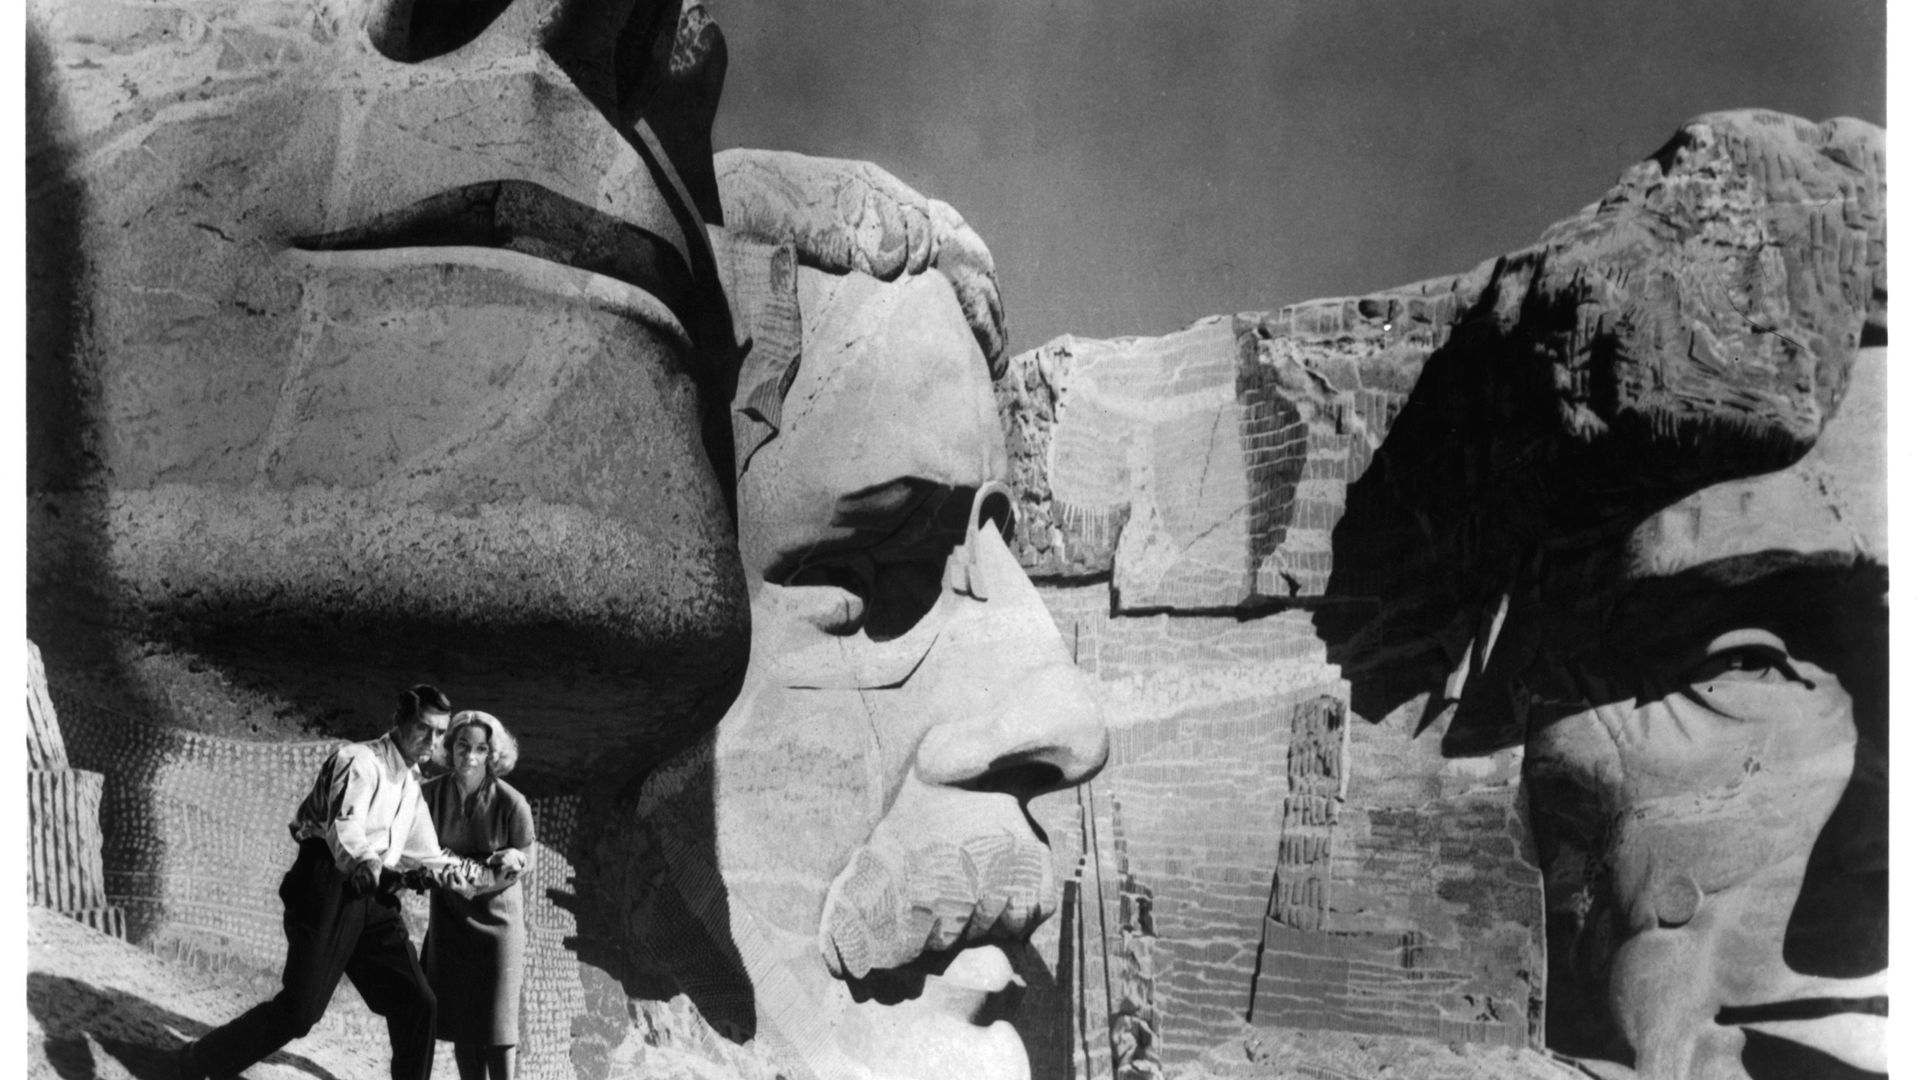 Cary Grant and Eva Marie Saint walking near the faces on Mt. Rushmore in a scene from the film North By Northwest, 1959 - Credit: Getty Images